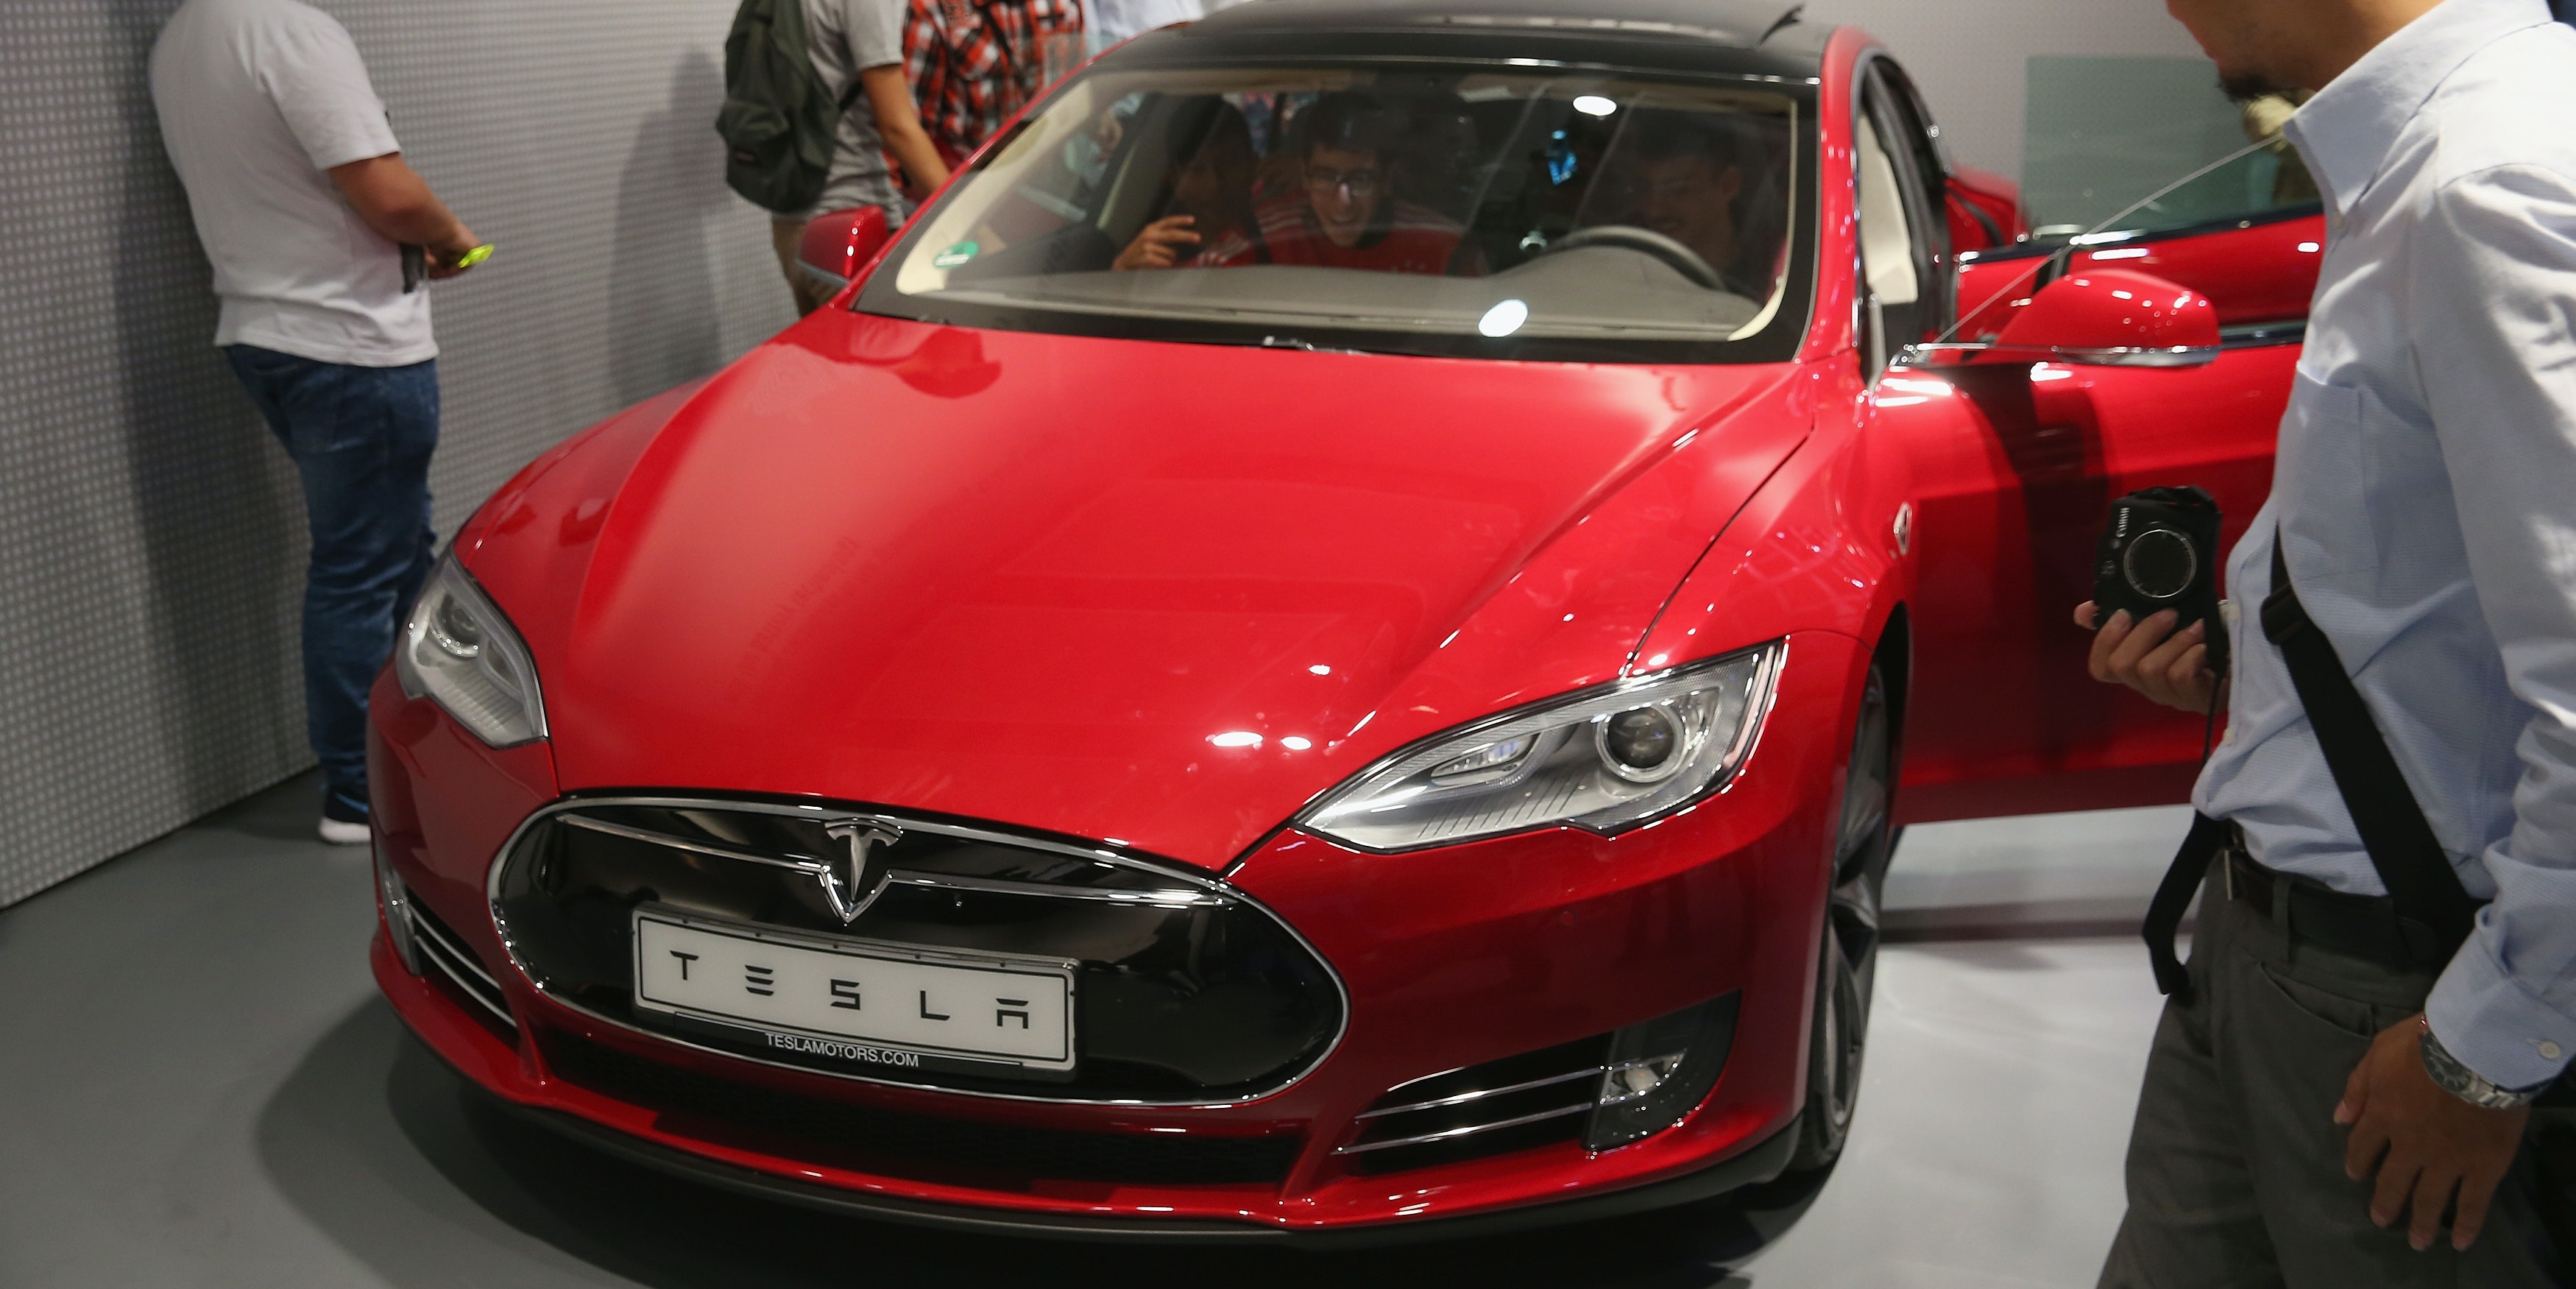 BERLIN, GERMANY - SEPTEMBER 05:  Visitors look at a Tesla Model S electric car at the Panasonic stand at the 2014 IFA home electronics and appliances trade fair on September 5, 2014 in Berlin, Germany. IFA is the world's biggest fair of its kind and is open to the public through September 10.  (Photo by Sean Gallup/Getty Images)